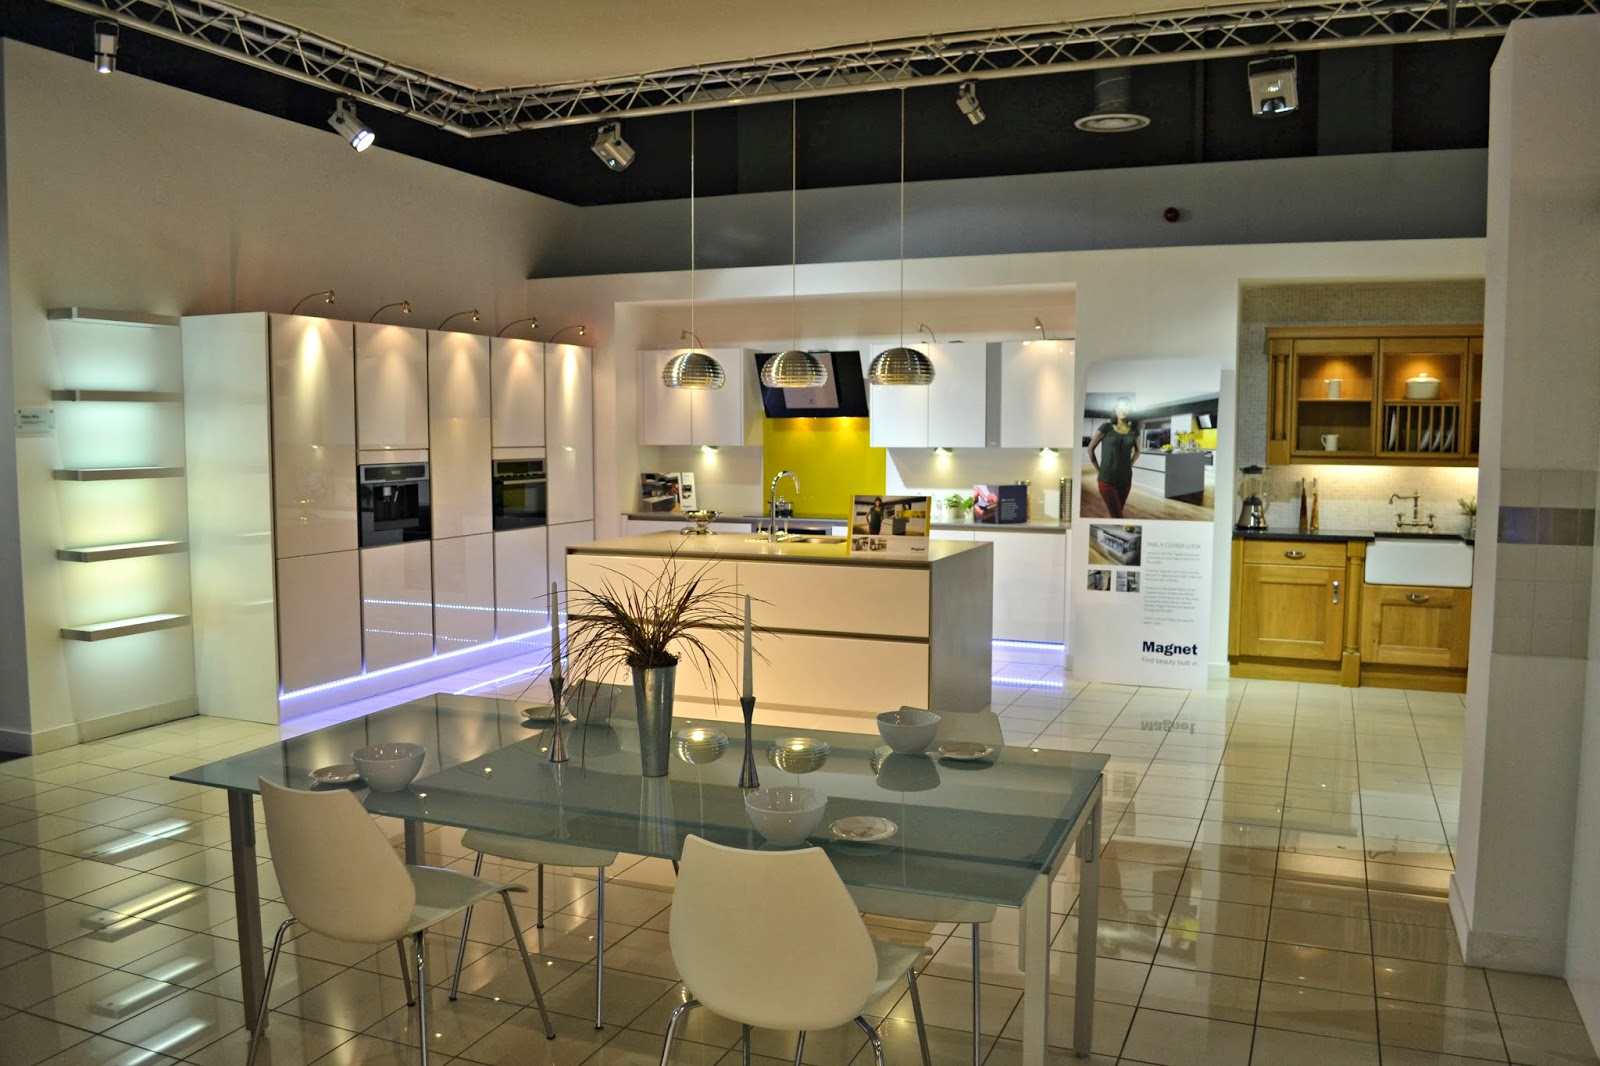 Exceptionnel Our Home Moving Forwards U0026 Magnet Kitchens   Write Like No Oneu0027s Watching